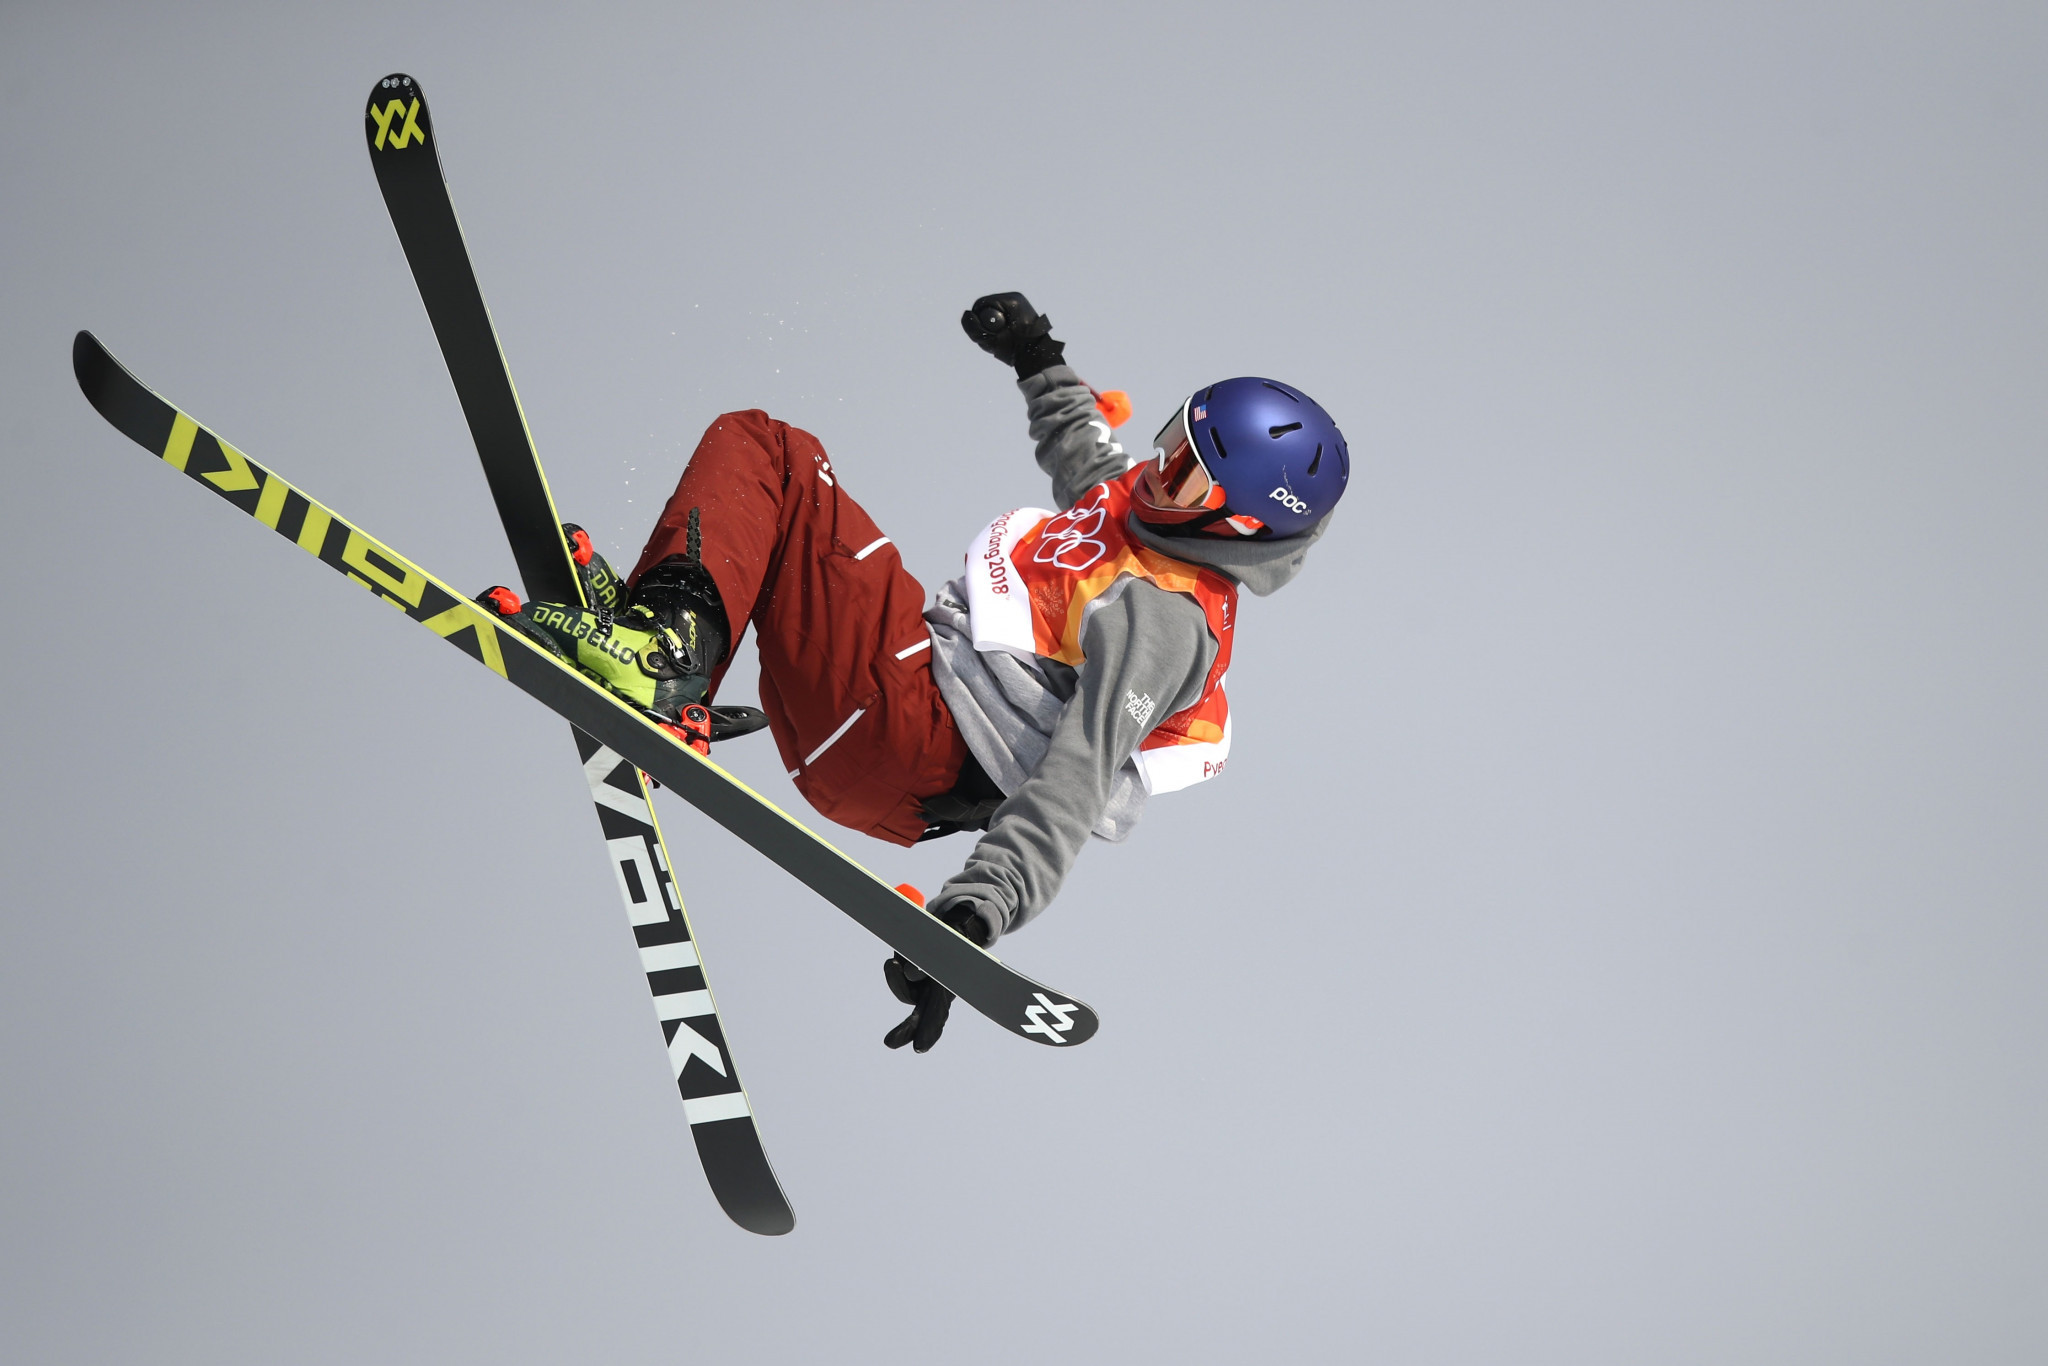 Olympic medals awarded in men's ski slopestyle